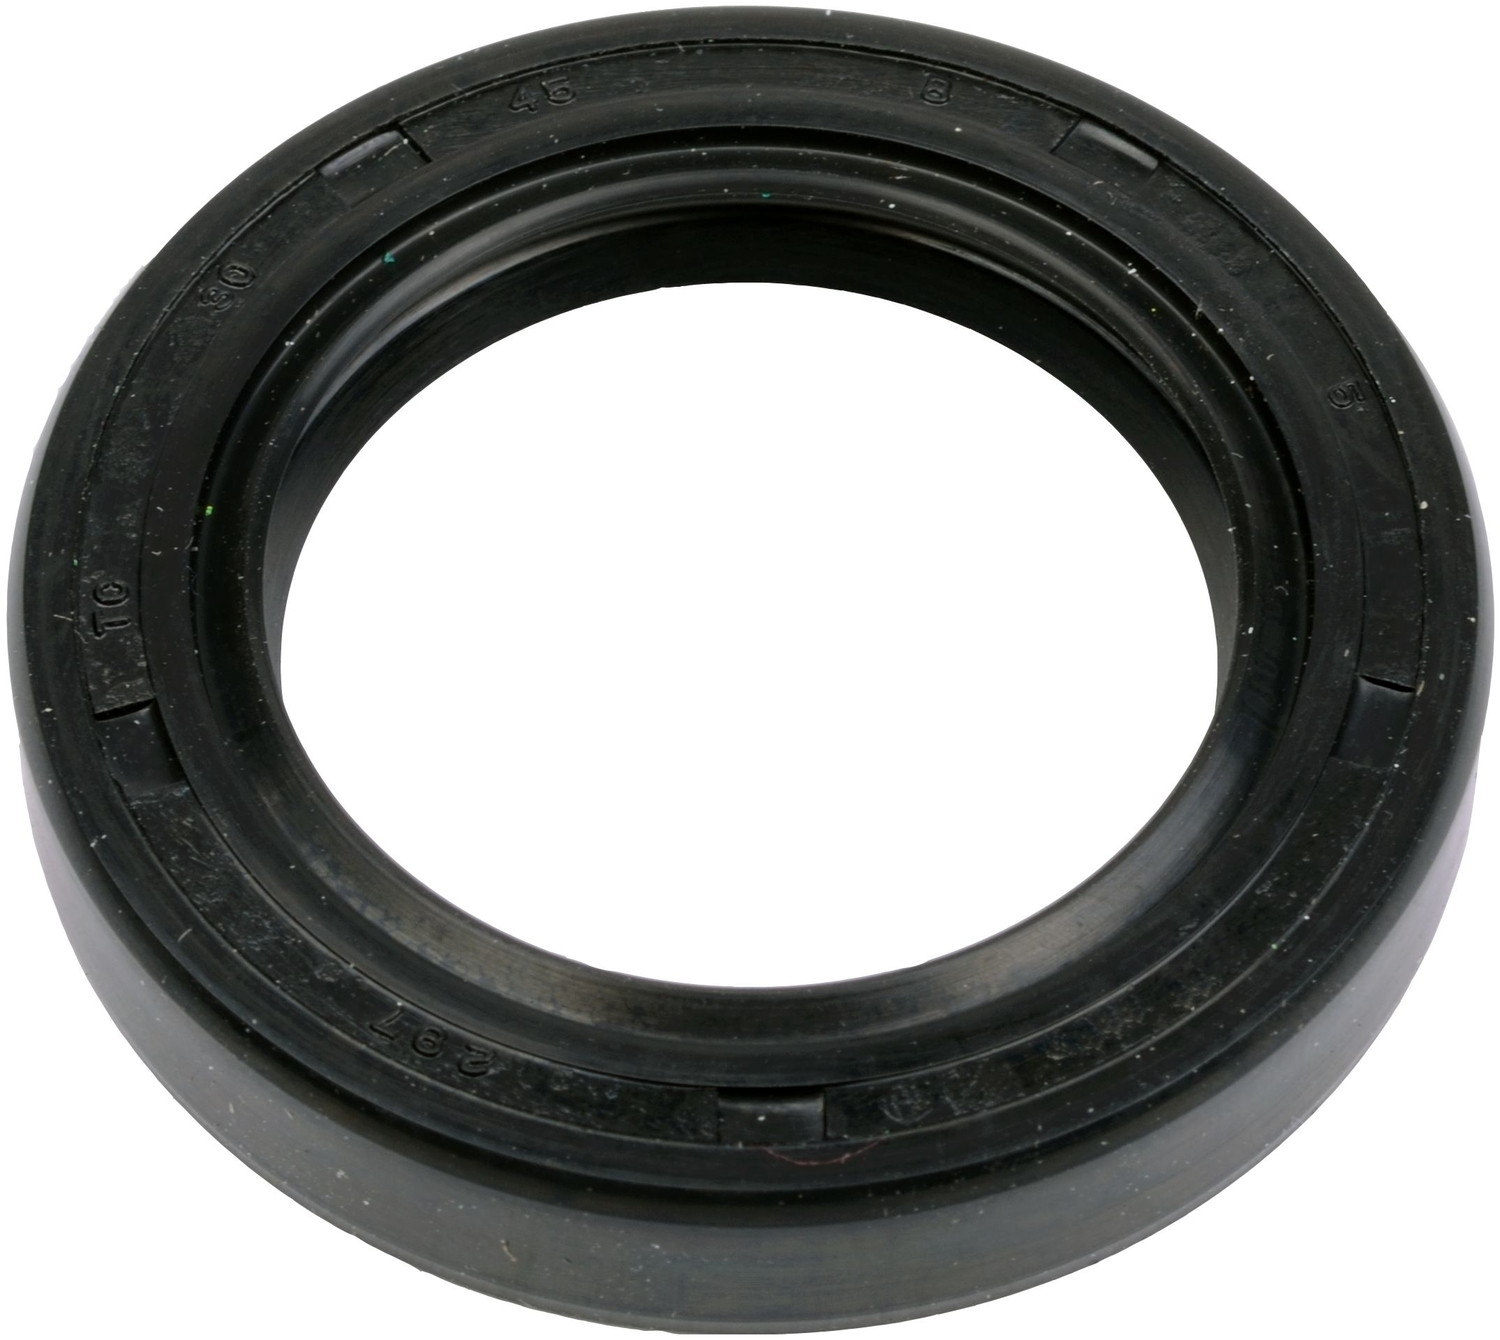 SKF (CHICAGO RAWHIDE) - Manual Trans Transfer Shaft Seal - SKF 11592